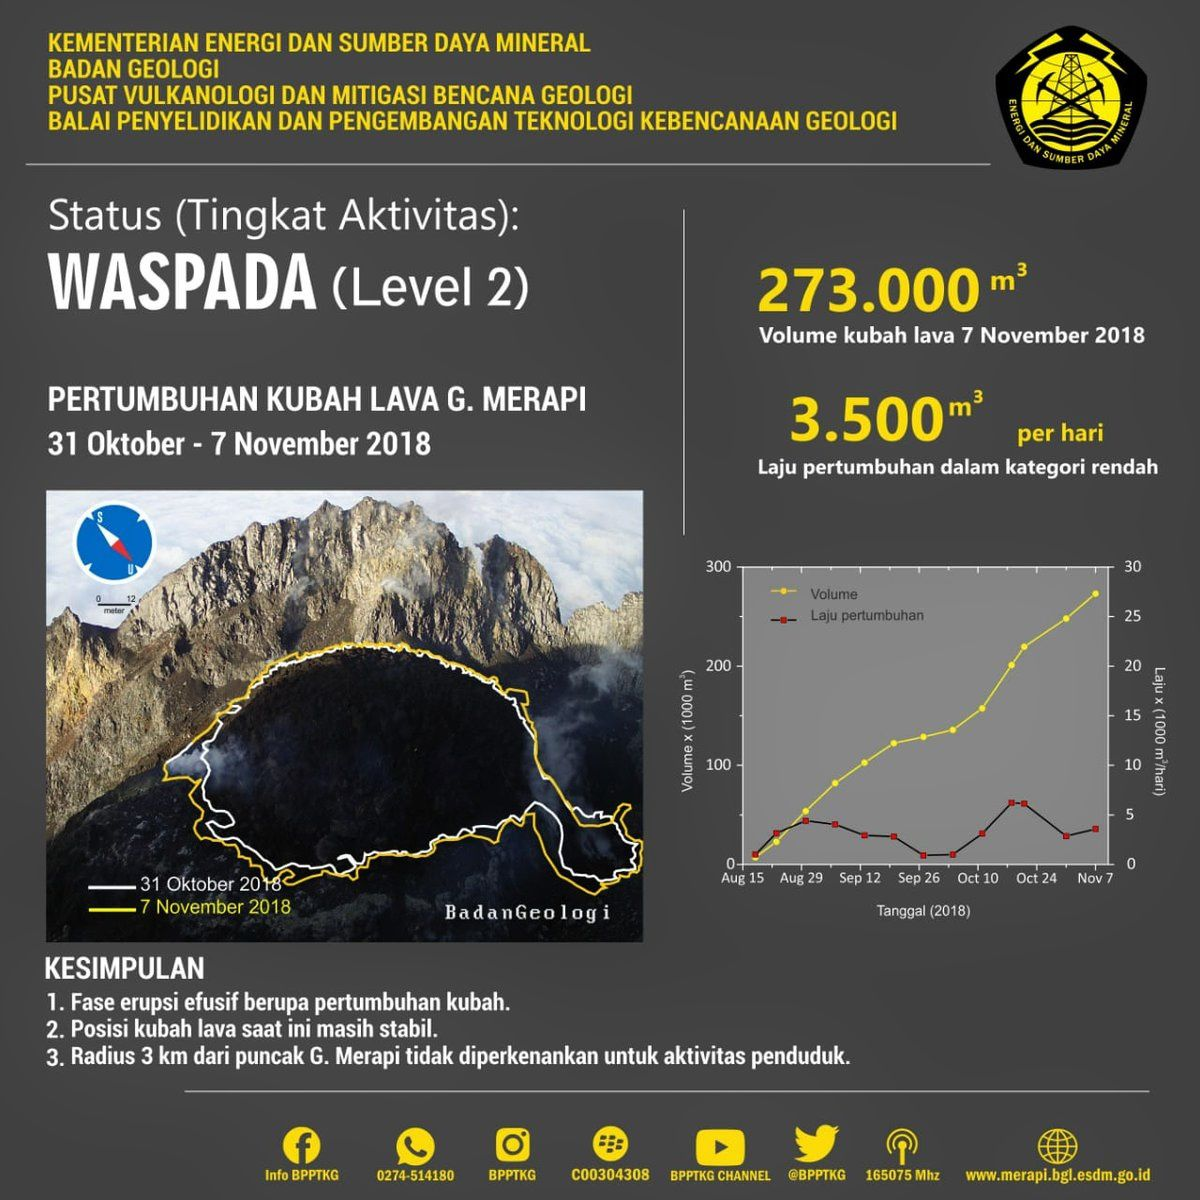 Merapi - dome growth between 31 October and 7 November - Doc. PVMBG / BPPTKG